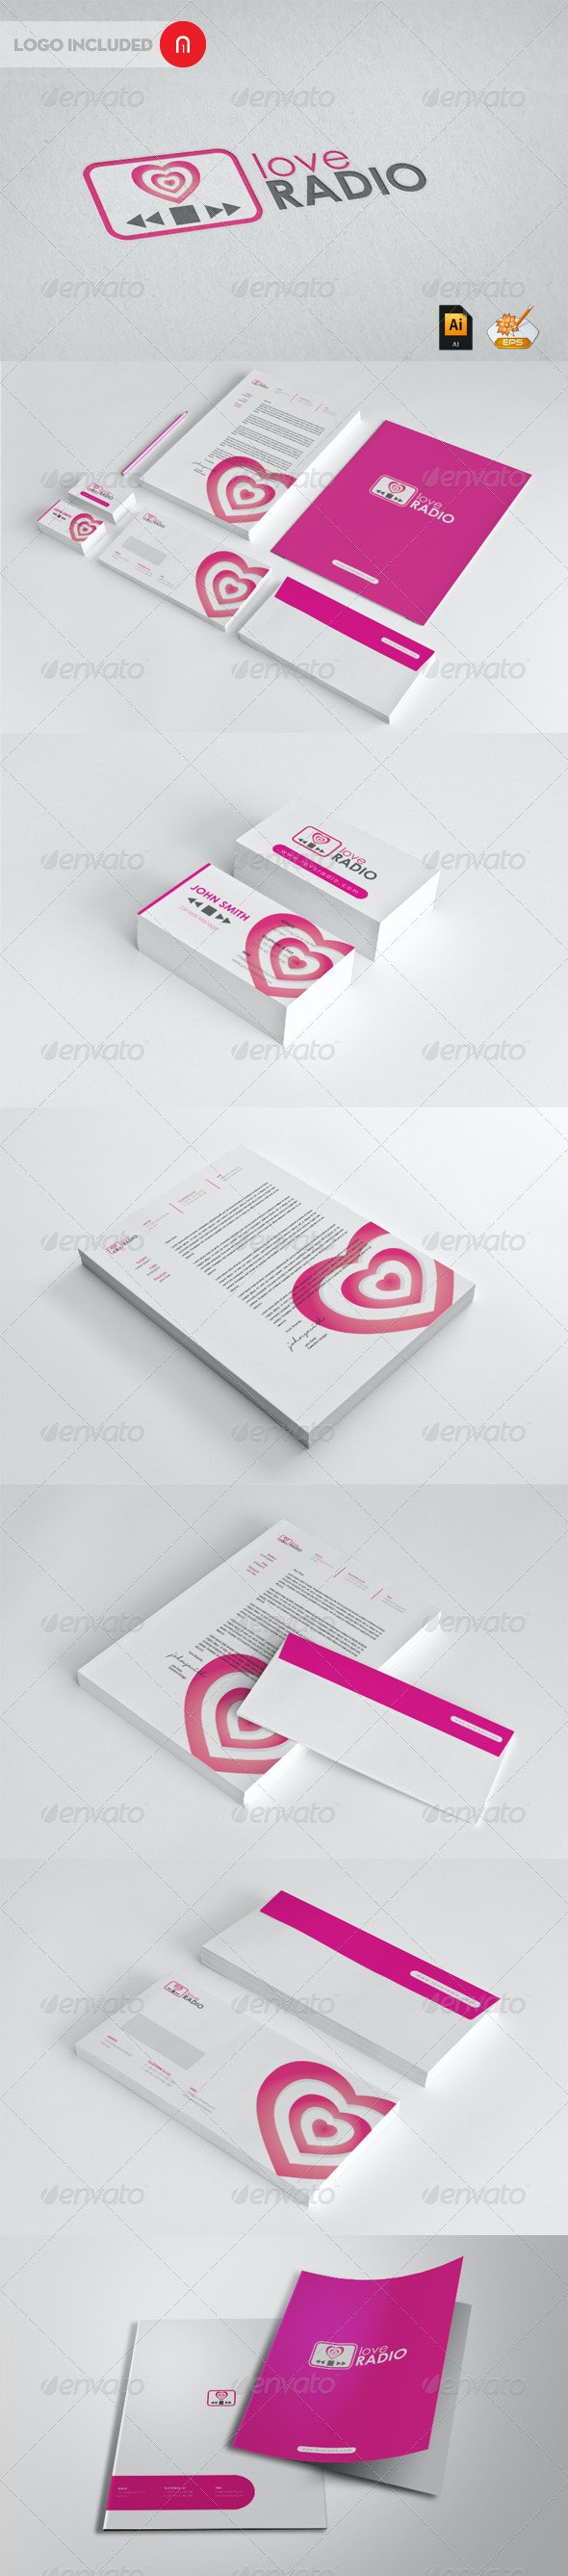 Stationary & Identity - Radio Love - Stationery Print Templates